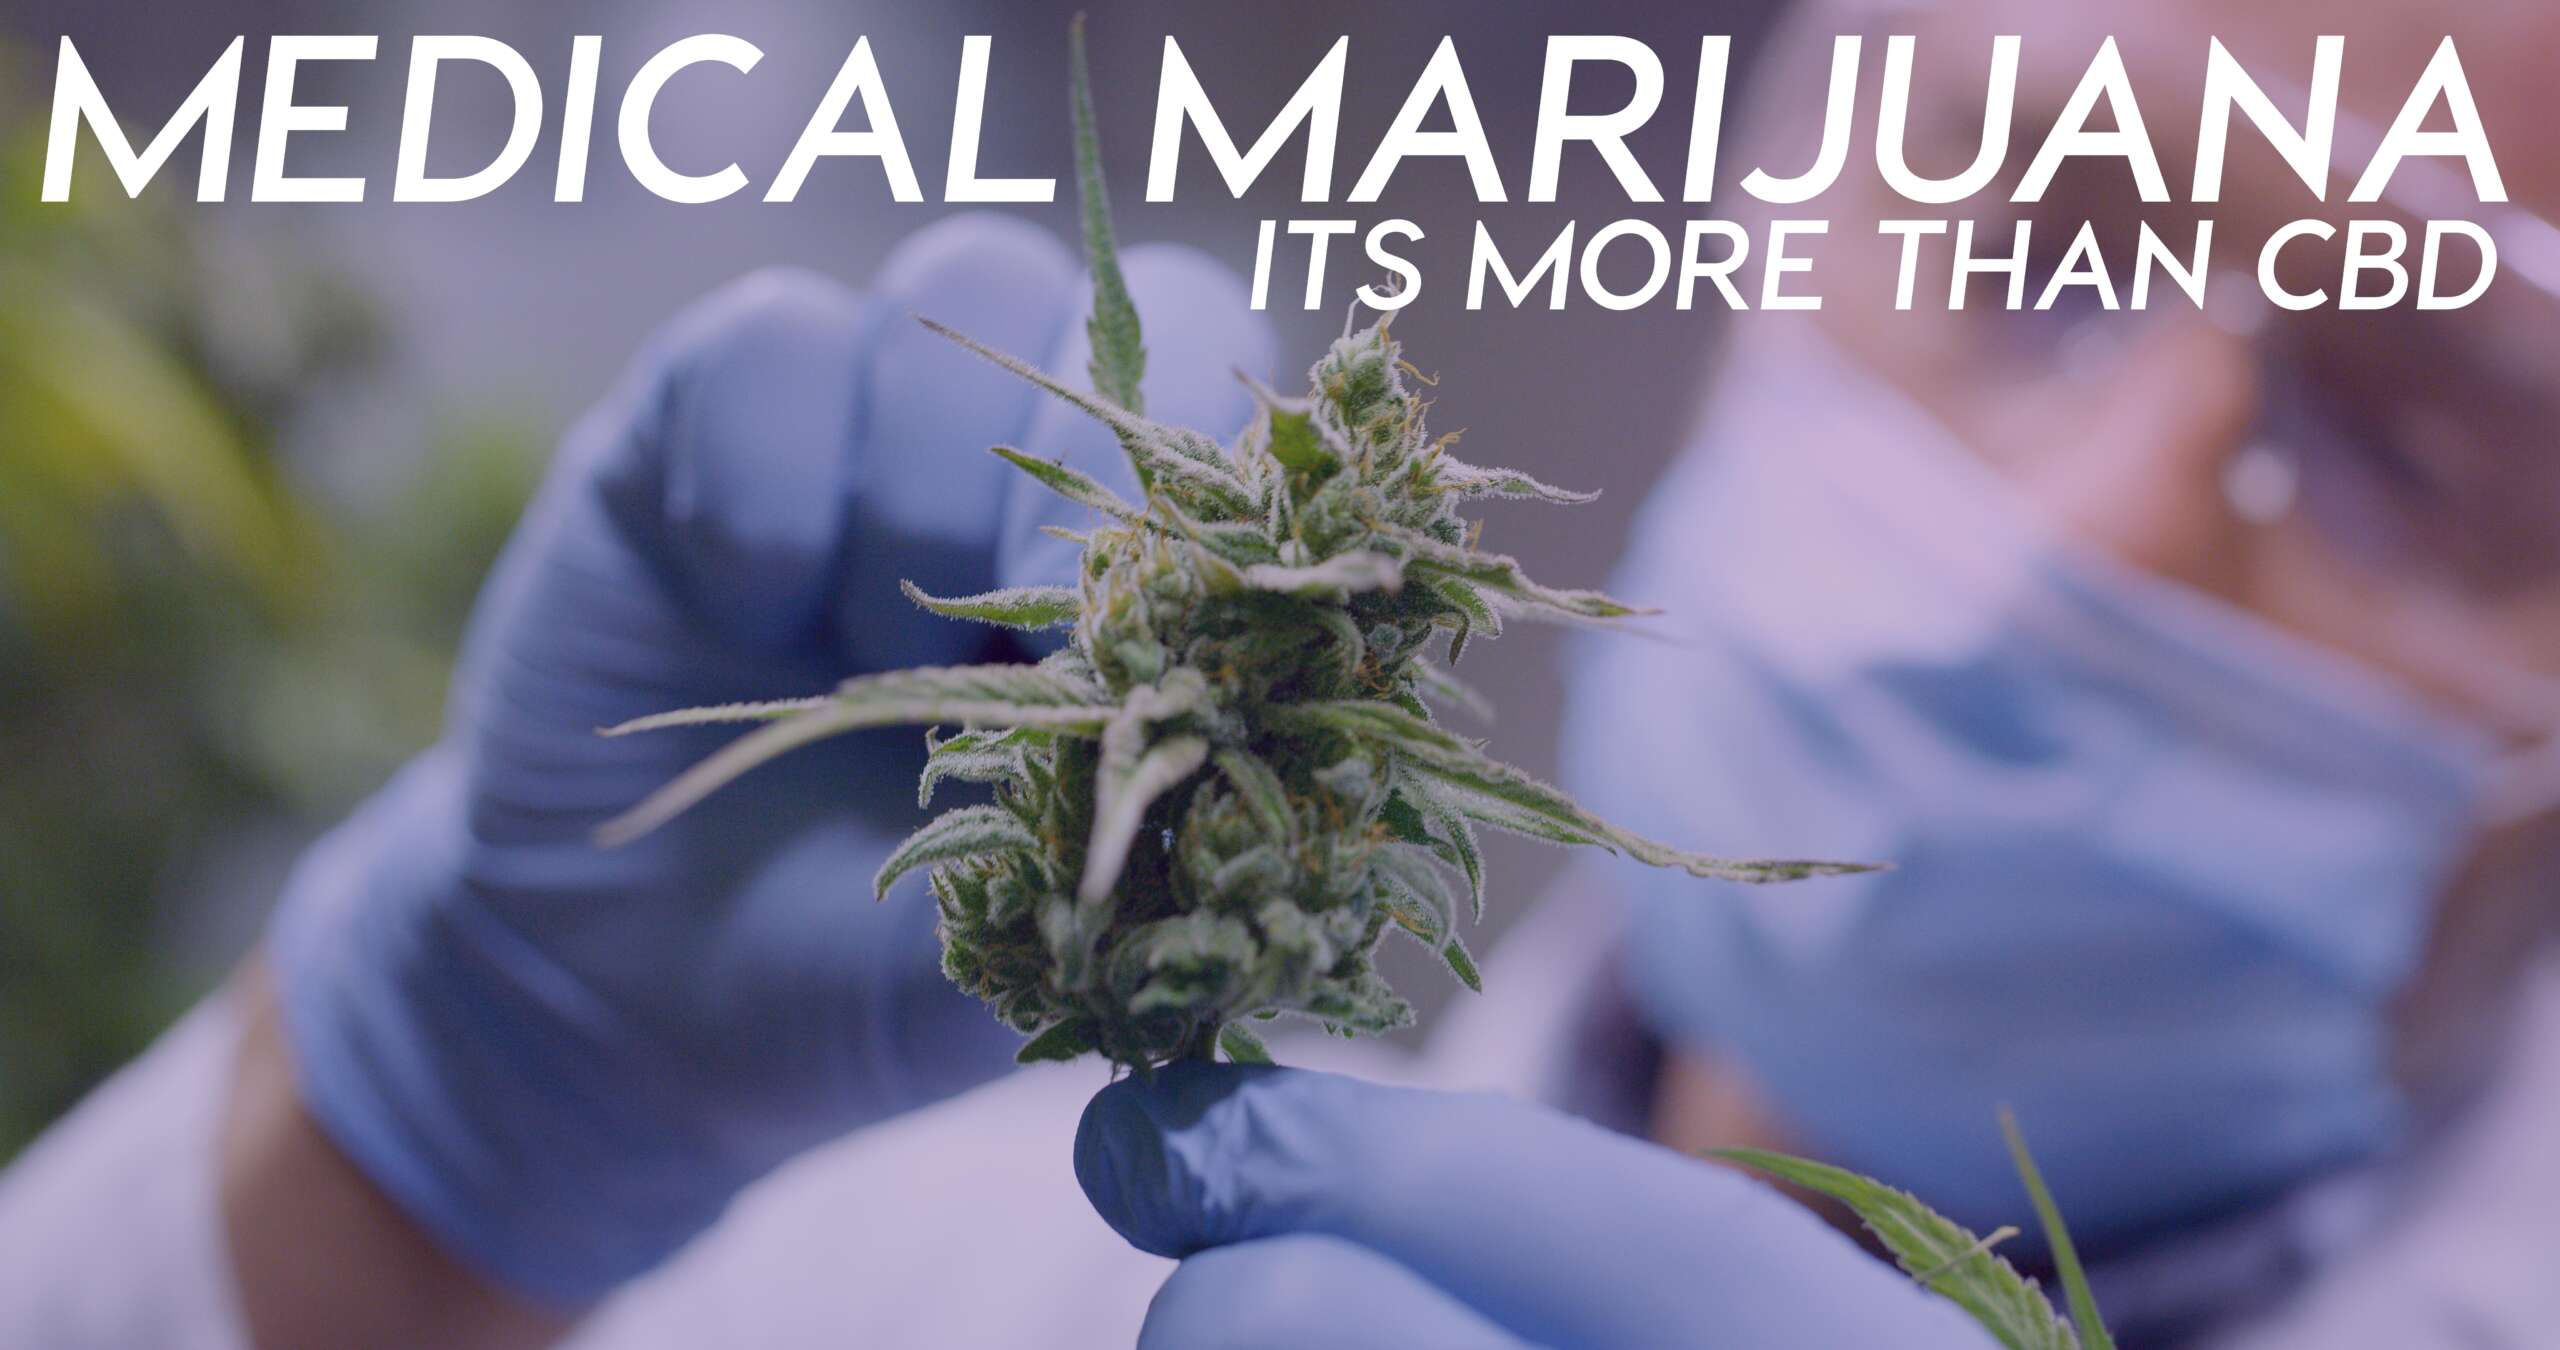 Medical Marijuana: It's More than CBD